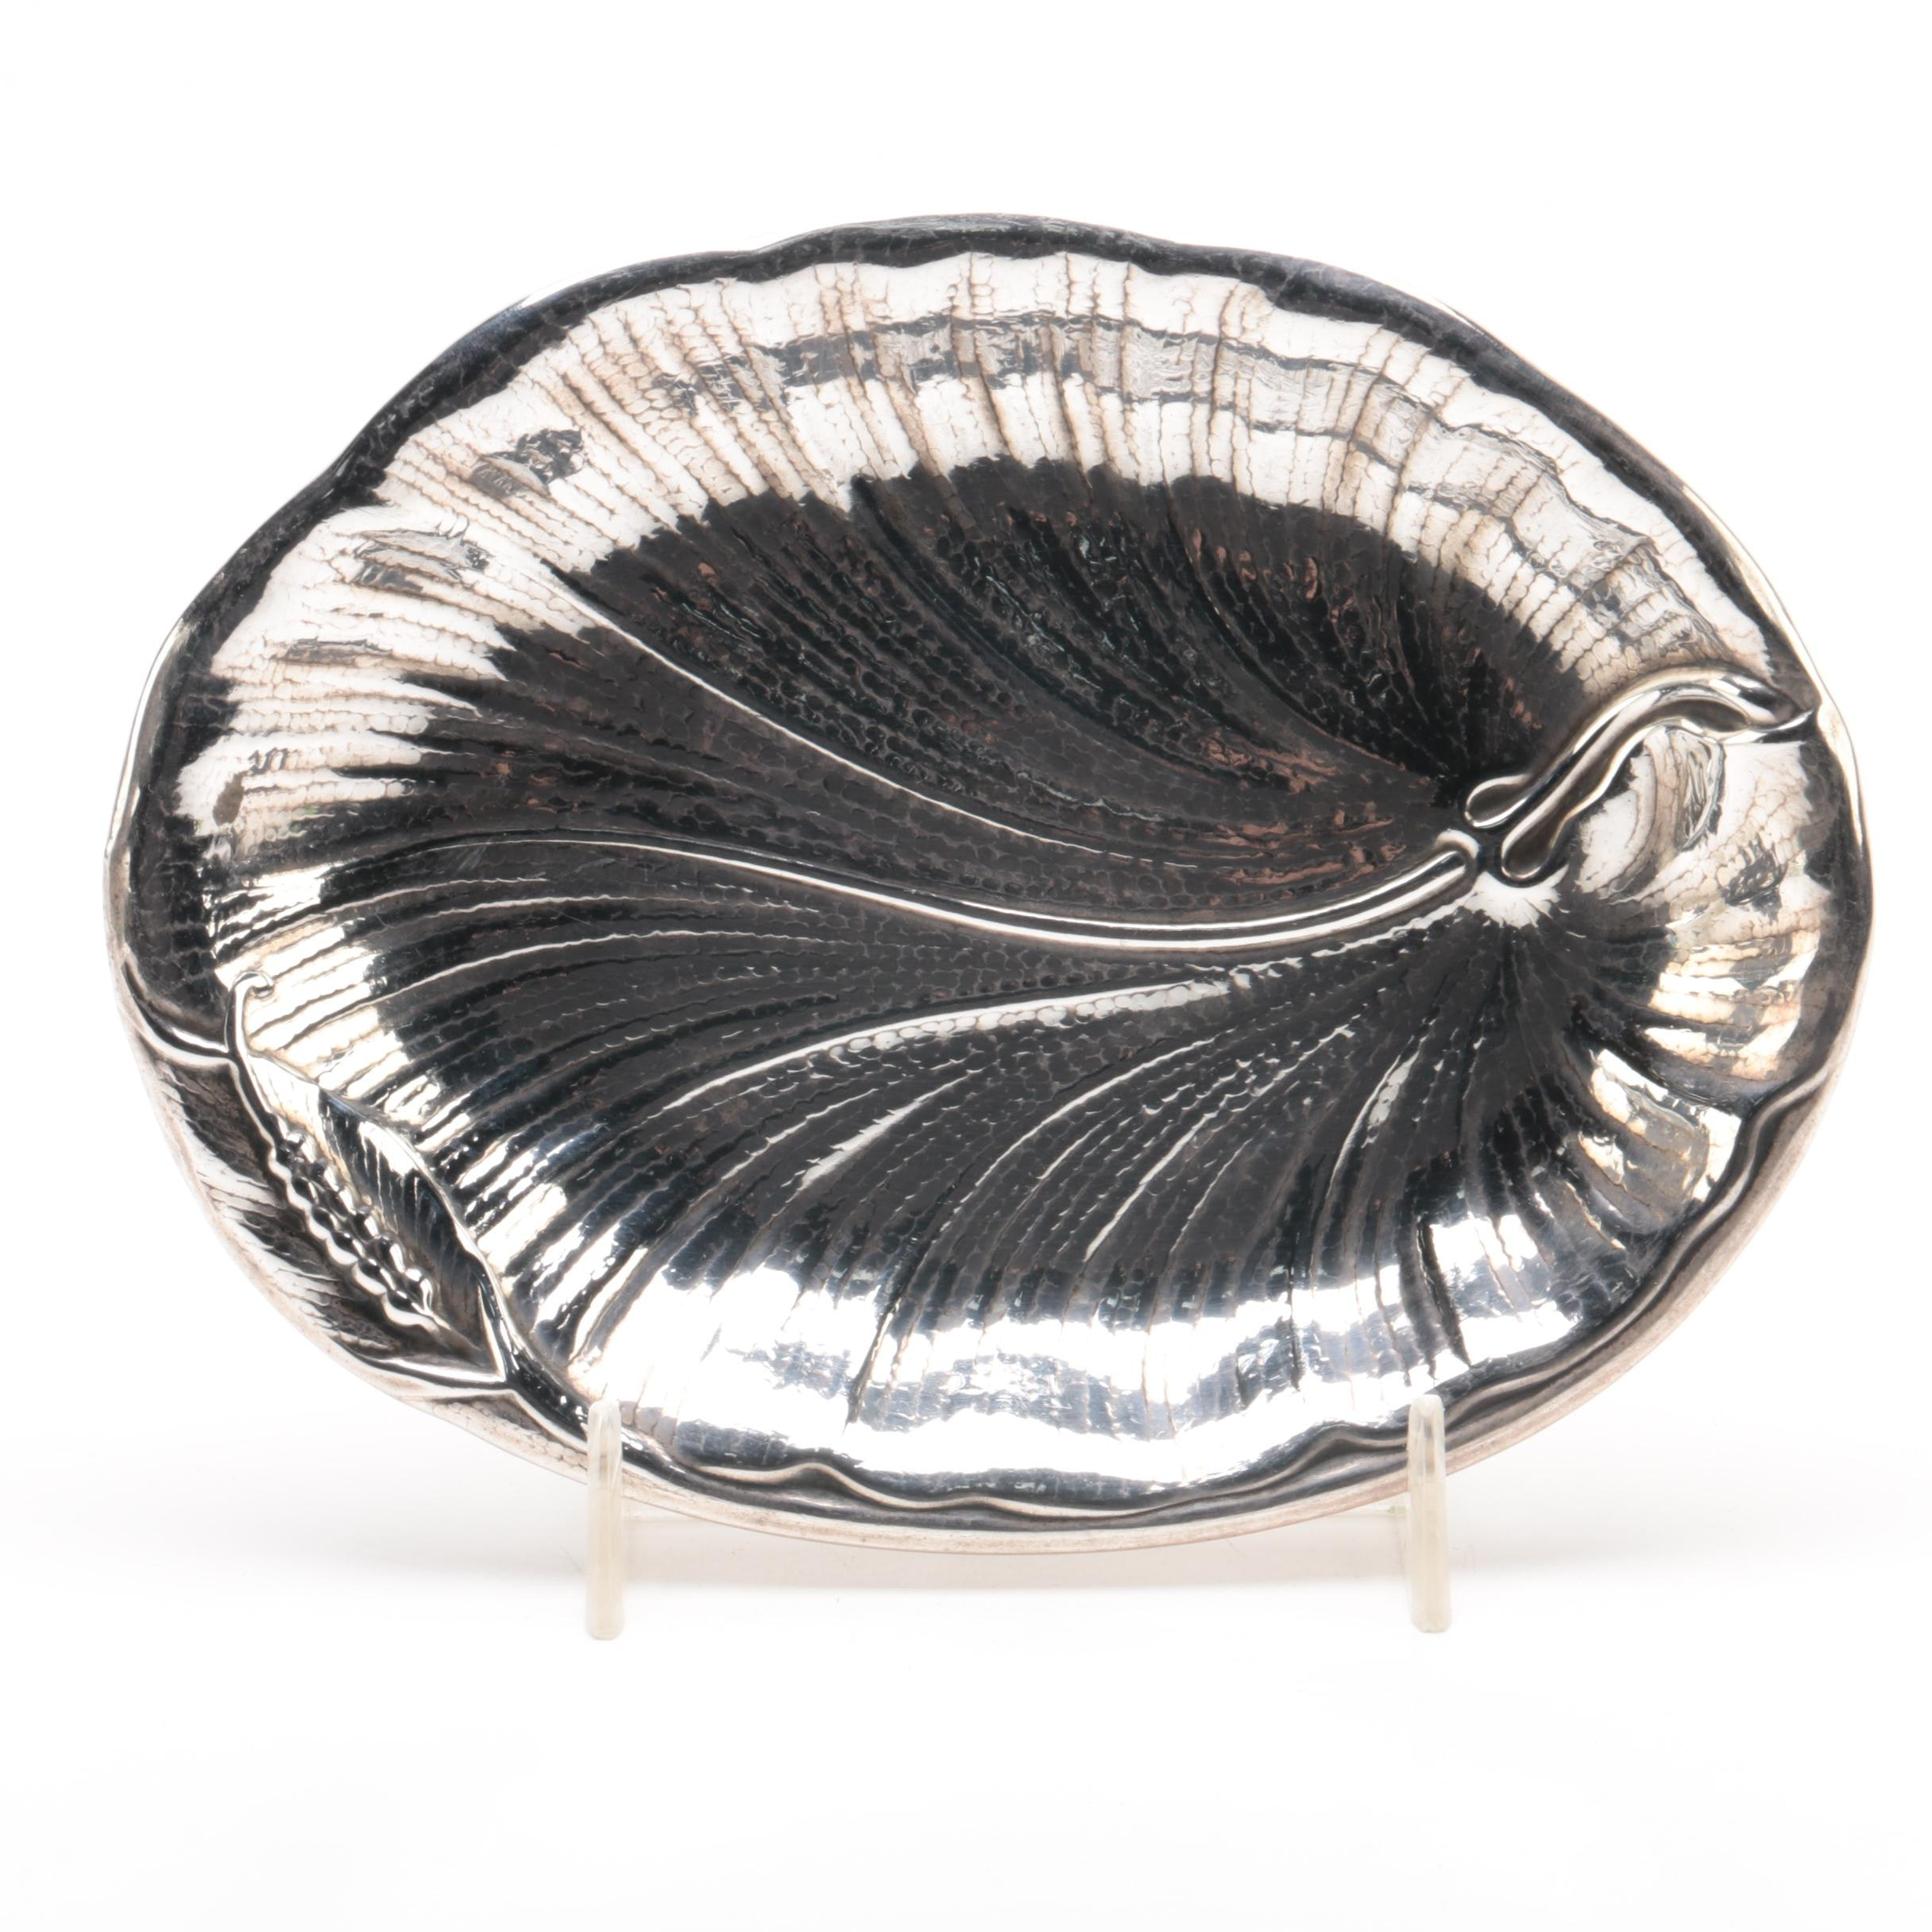 International Silver Co. Sterling Art Nouveau Style Leaf Form Dish